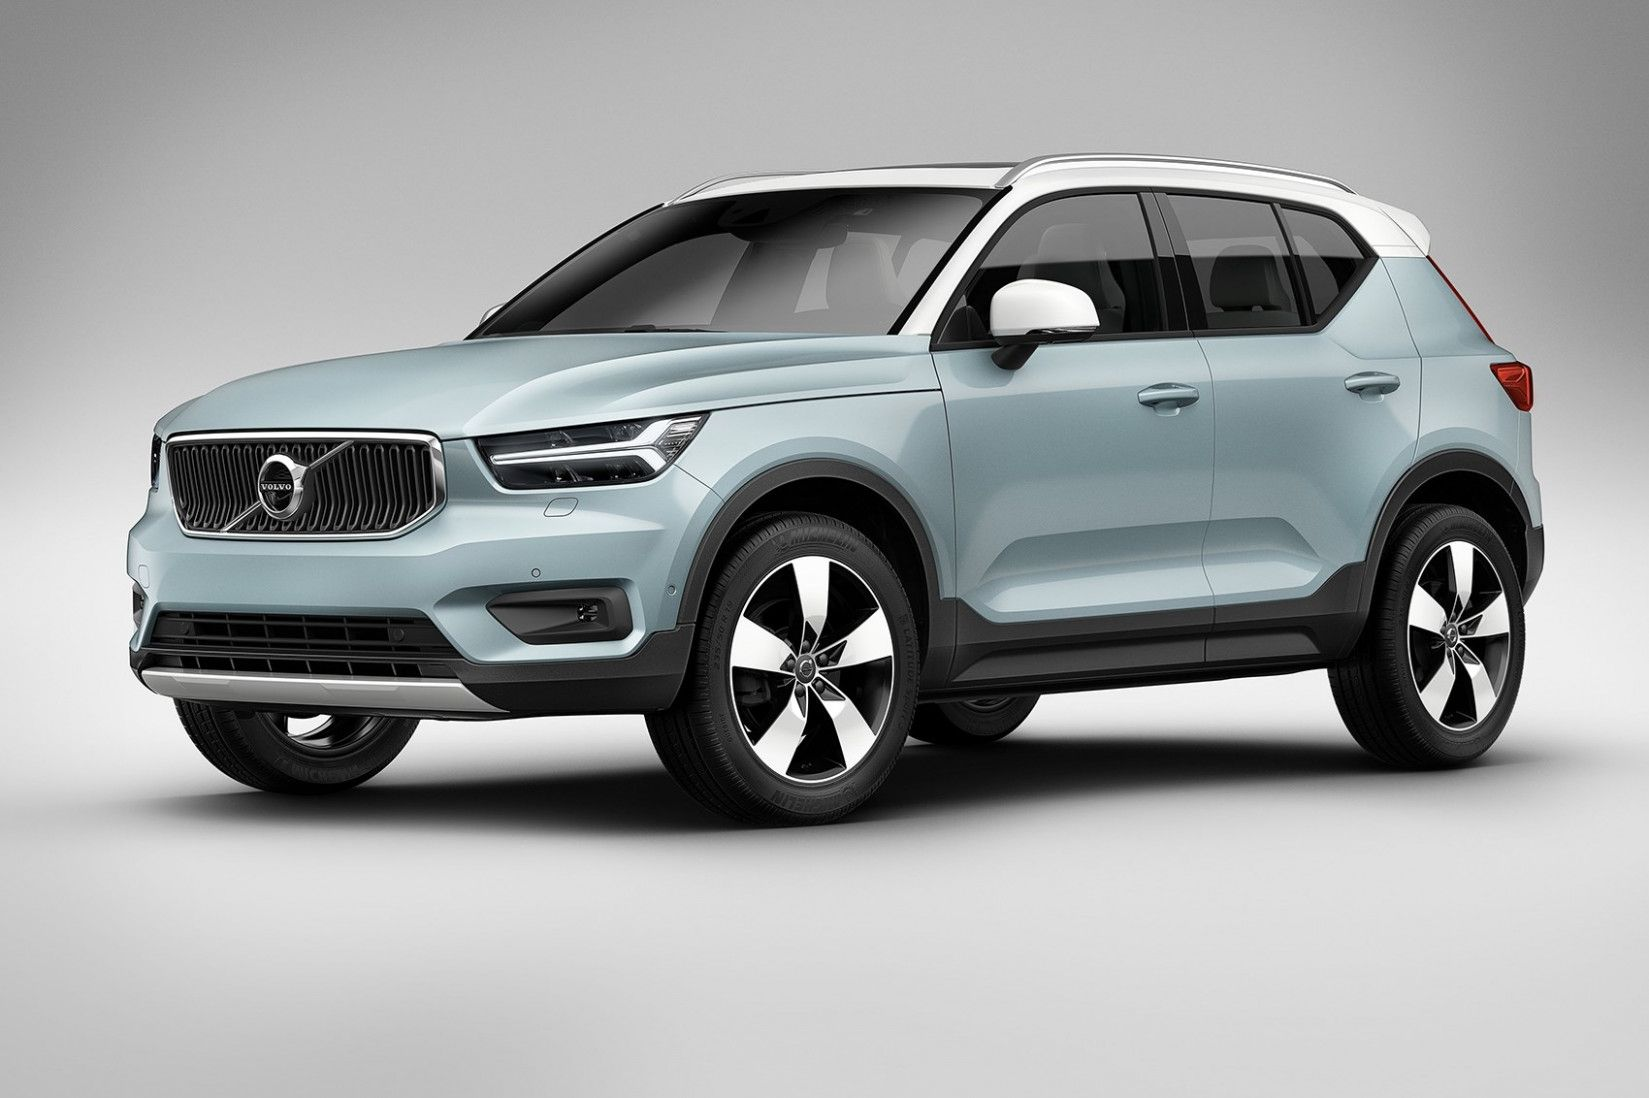 Pin By Arianna Landry On New Car In 2020 Volvo Suv Volvo Suv